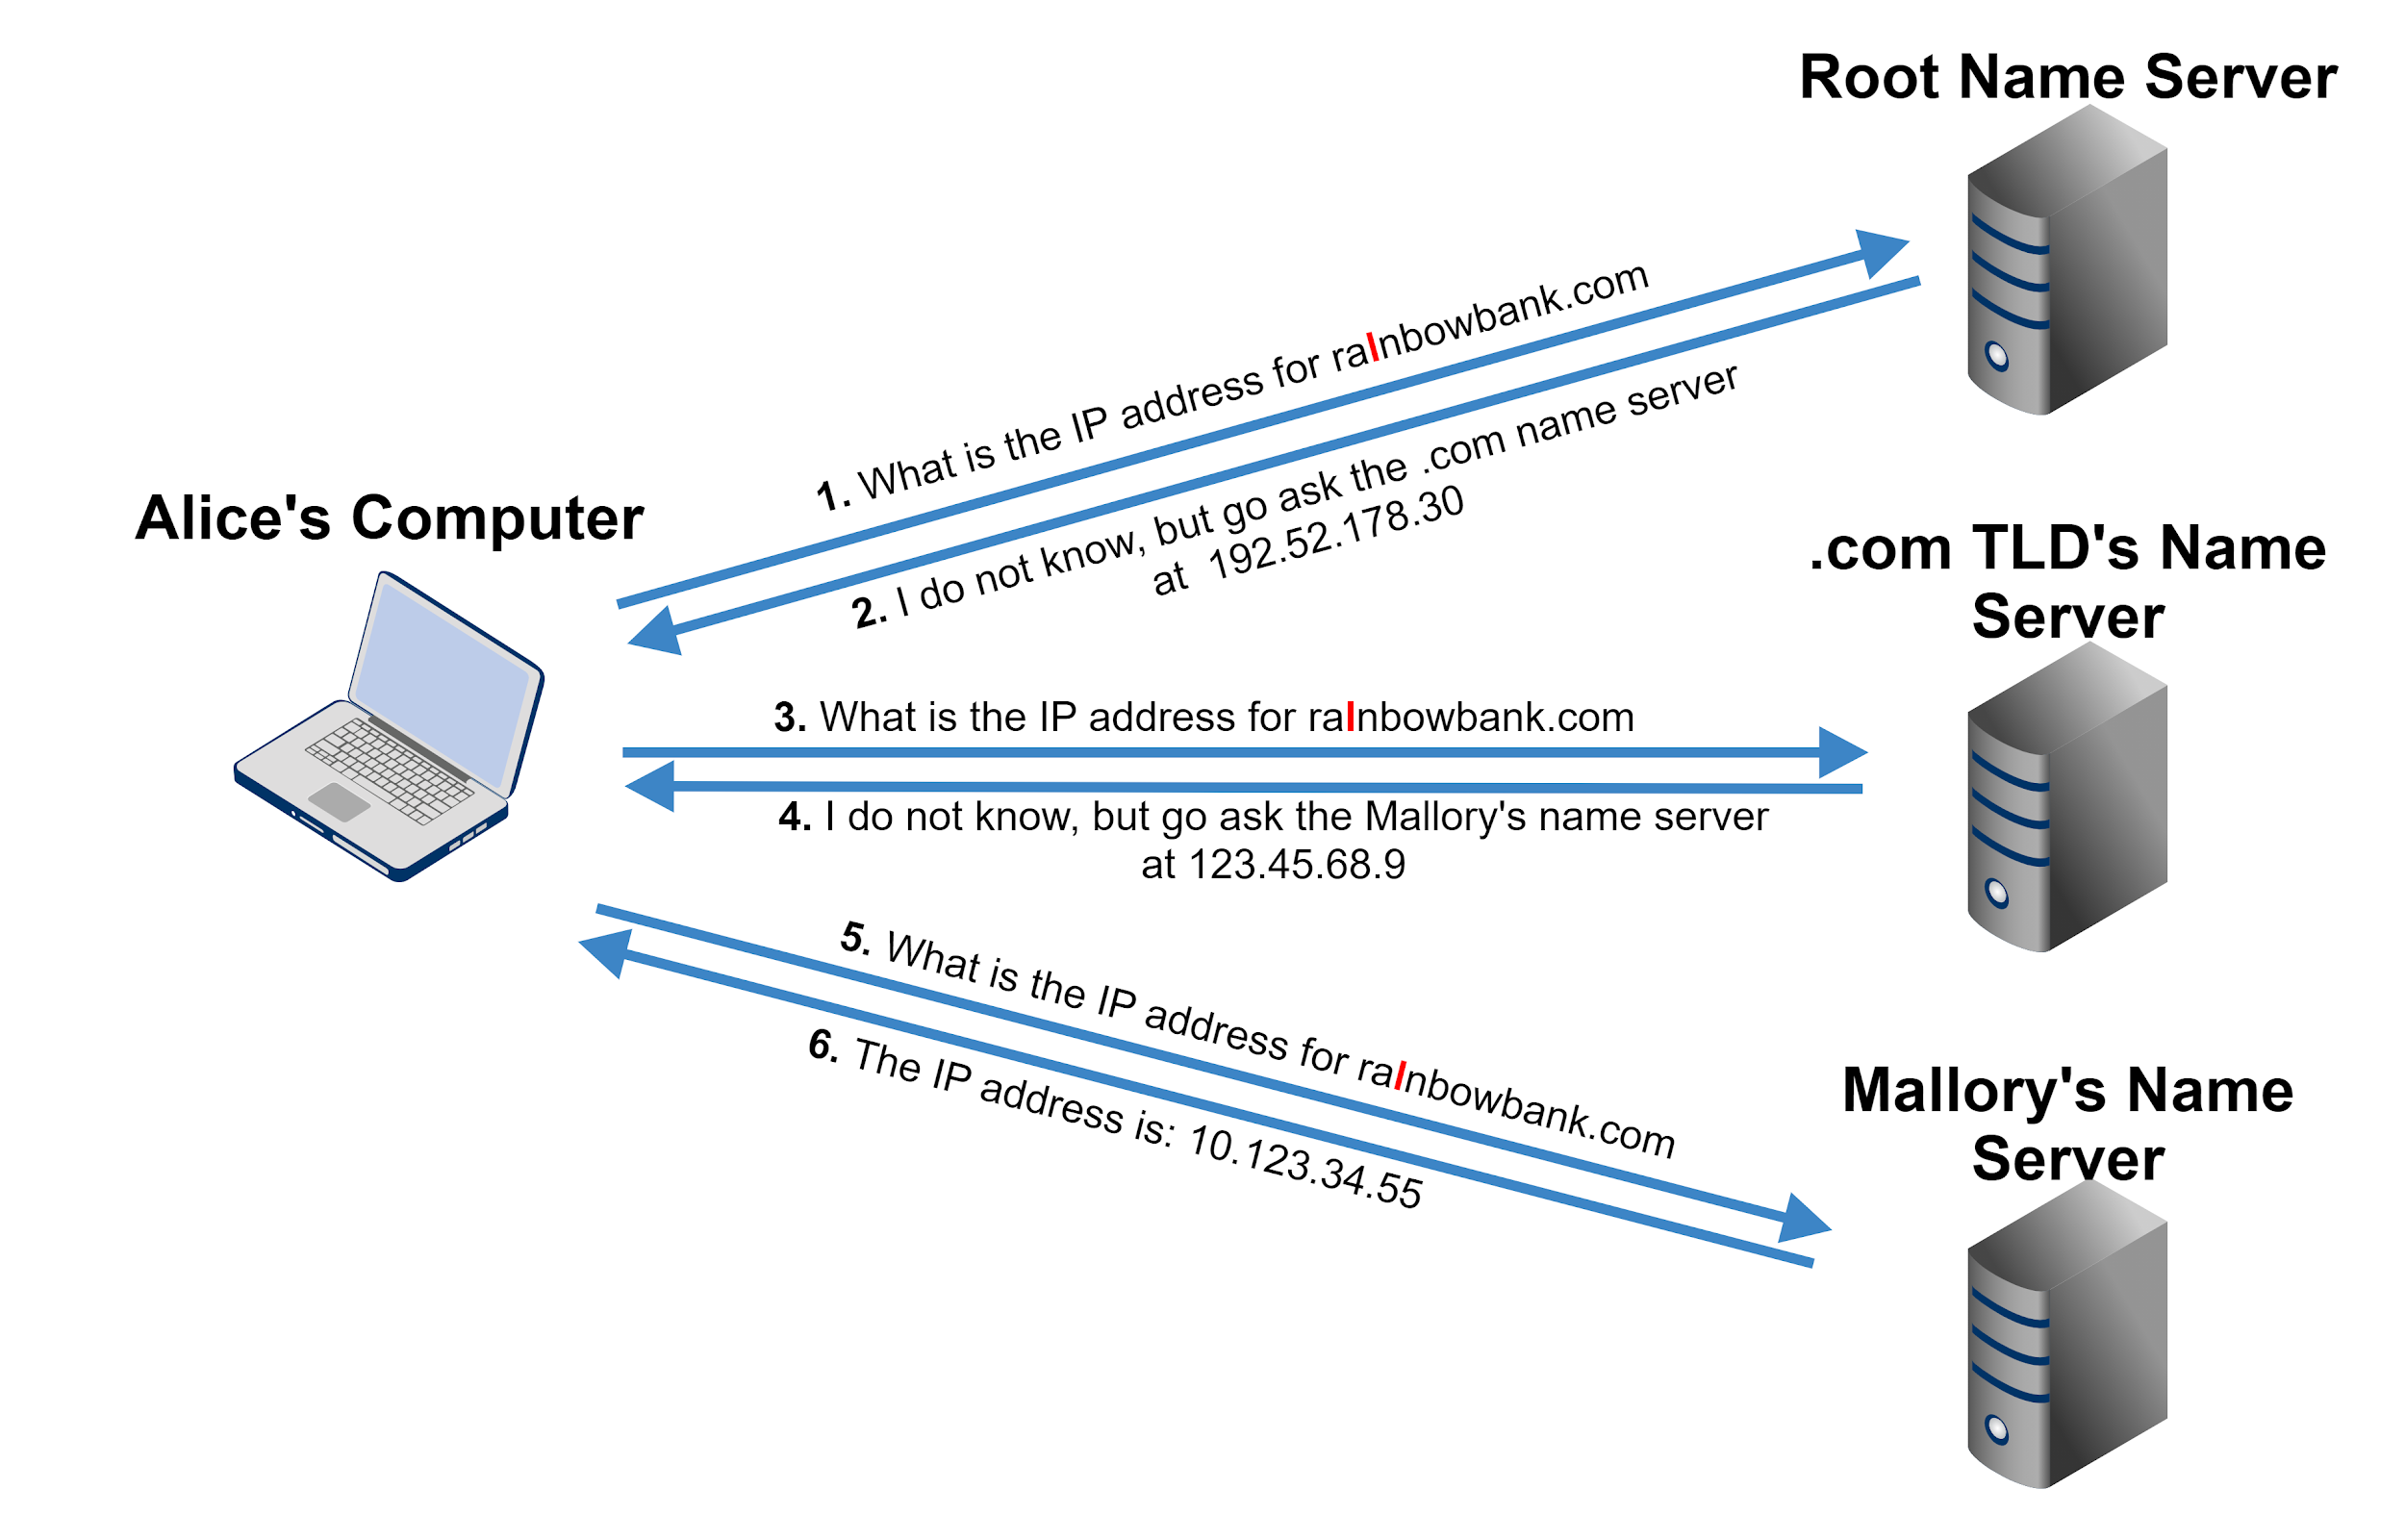 Example of how DNS resolution works: 1) Request for IP address for domain name from user's computer to a root name server; 2) Response: I do not know but go ask the .com name server at [IP address]; 3) Request for IP address for domain name from user's computer to .com TLD's name server; 4) Response: I do not know but go ask Mallory's name server at [IP address]; 5) Request for IP address for domain name from user's computer to Mallory's name server; 6) Response: The IP address is [RESPONSE]